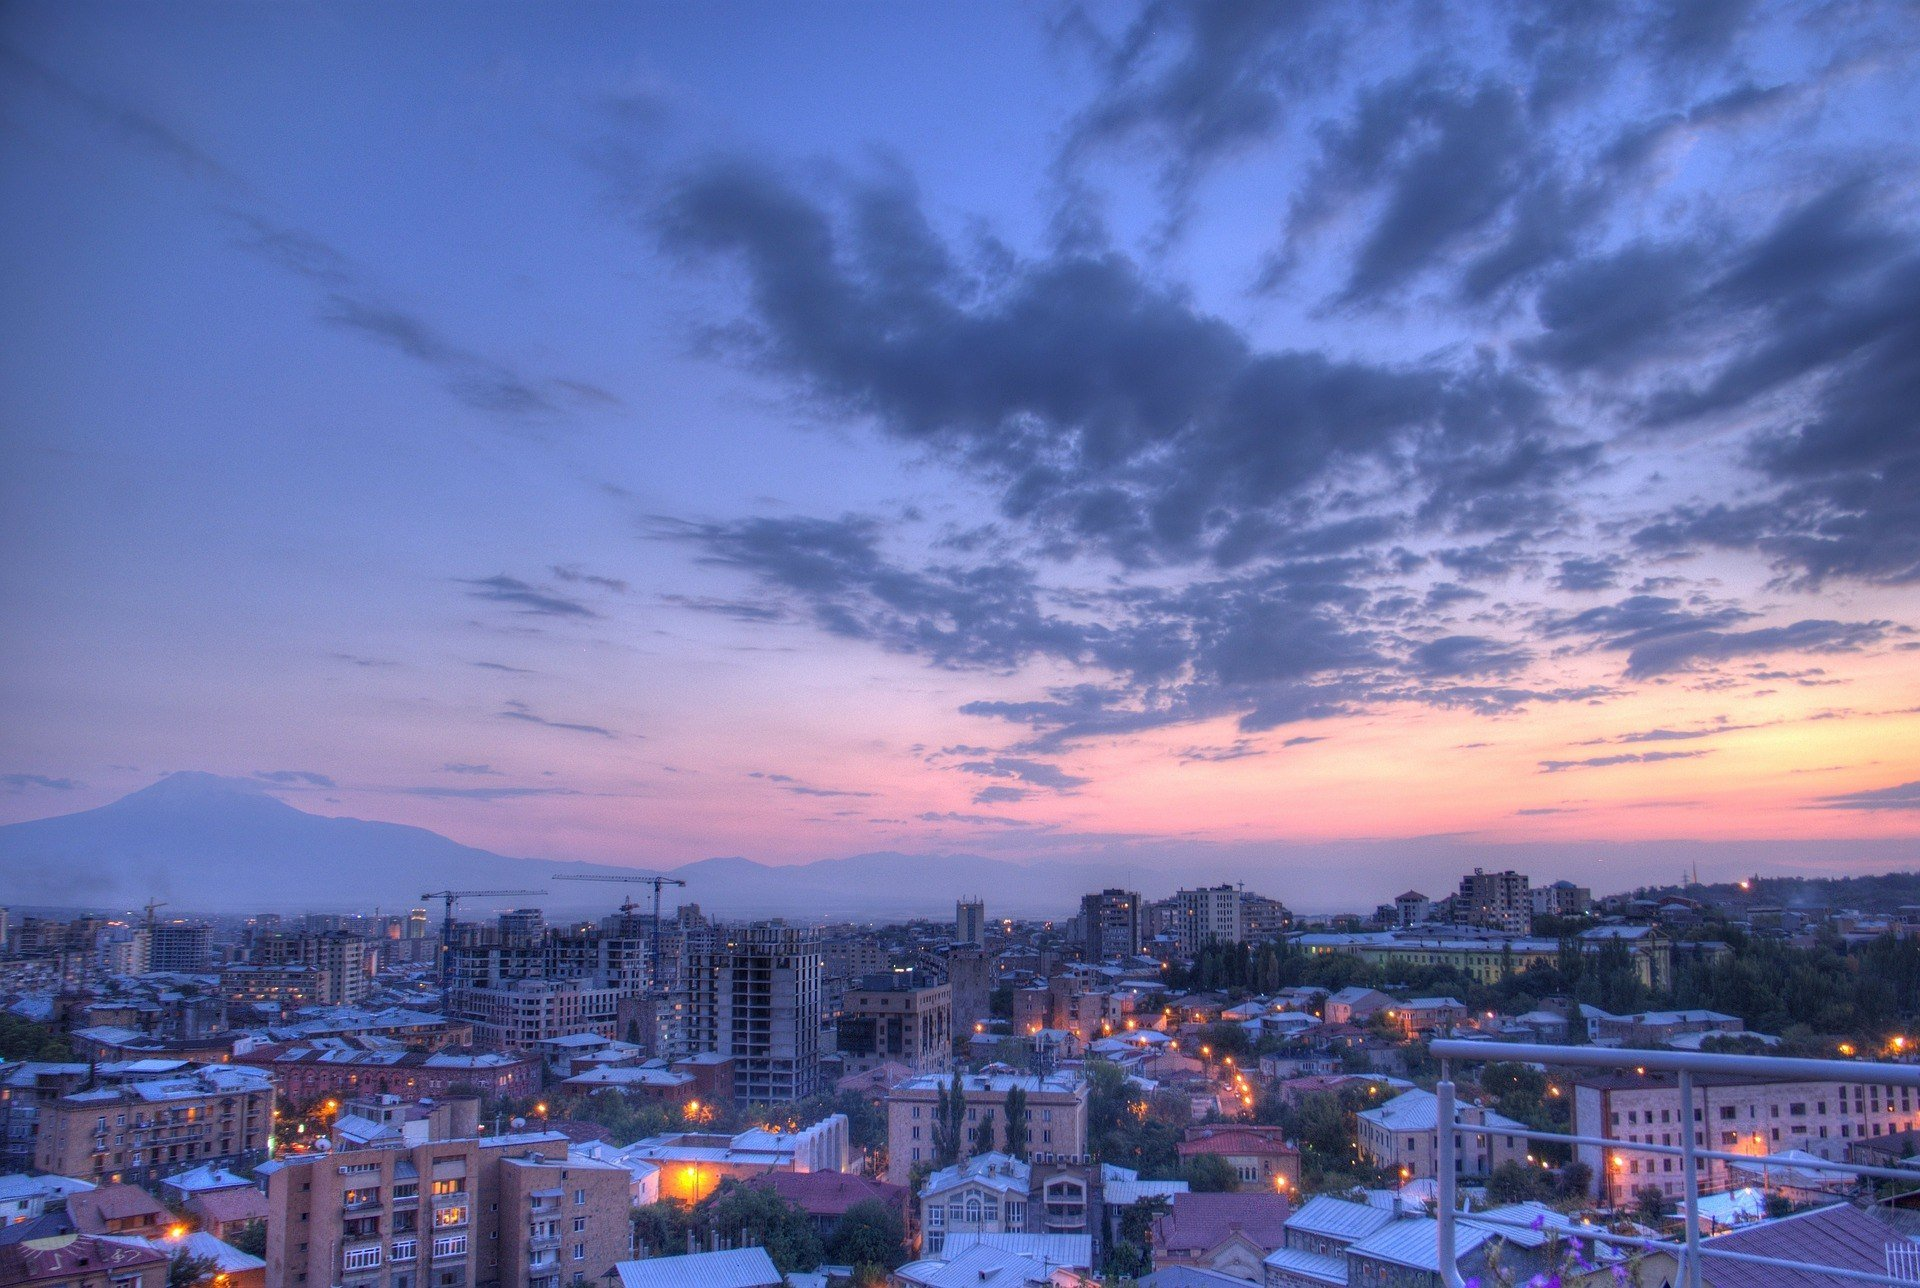 Spend some time in Yerevan, too!